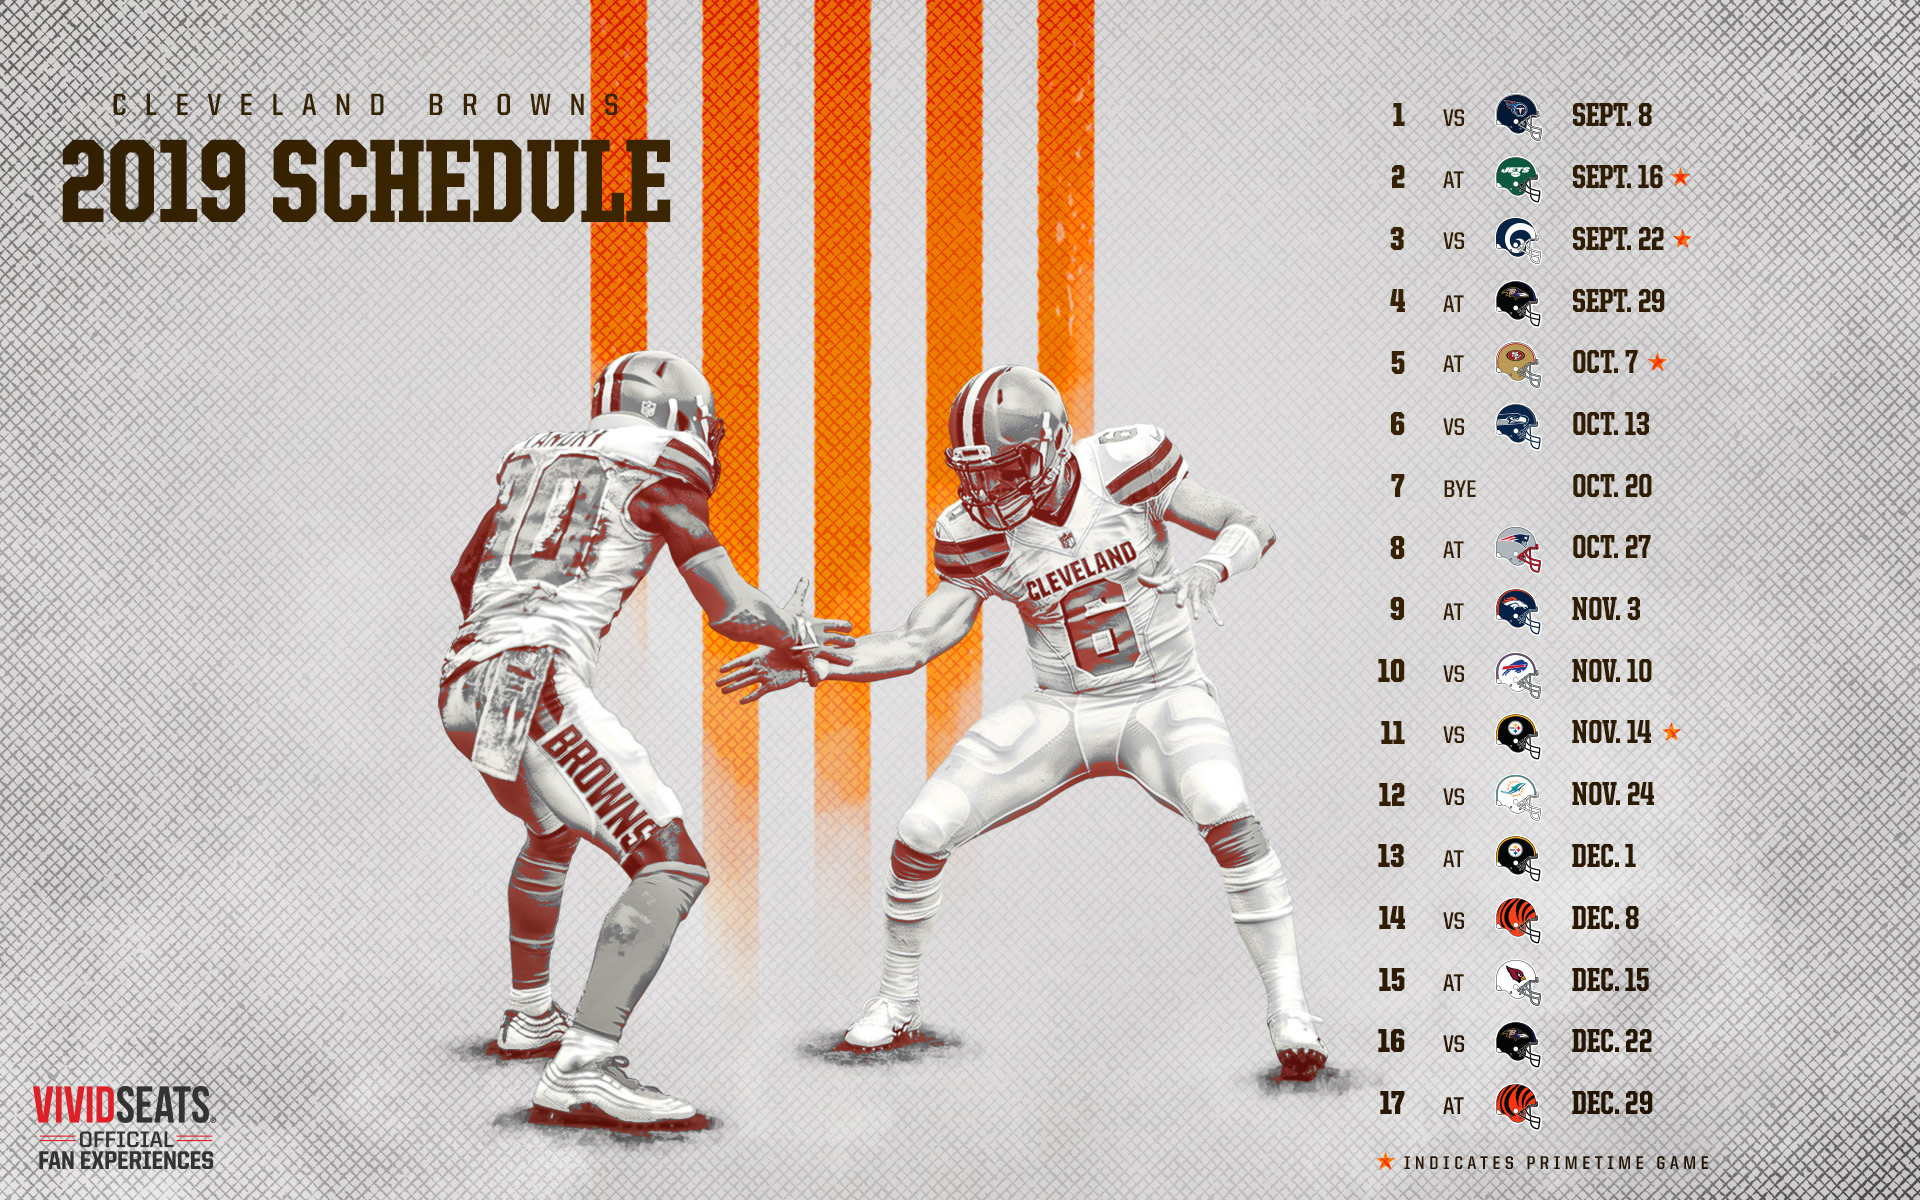 49ers Home Schedule 2020.Browns Schedule Downloads Cleveland Browns